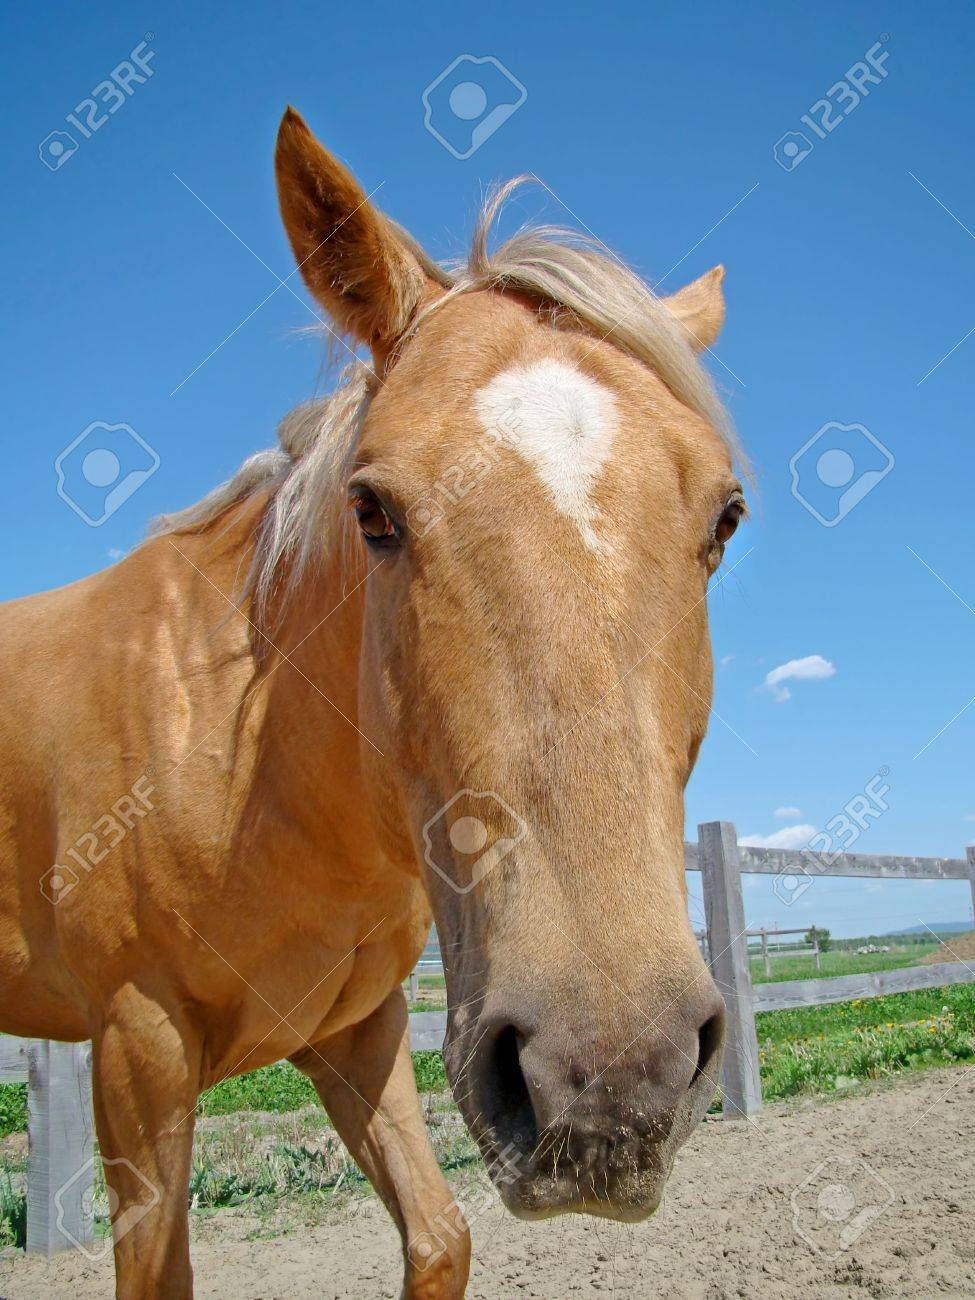 Funny Angle Shot With Fisheye Distortion Of A Golden Palomino Stock Photo Picture And Royalty Free Image Image 6977406